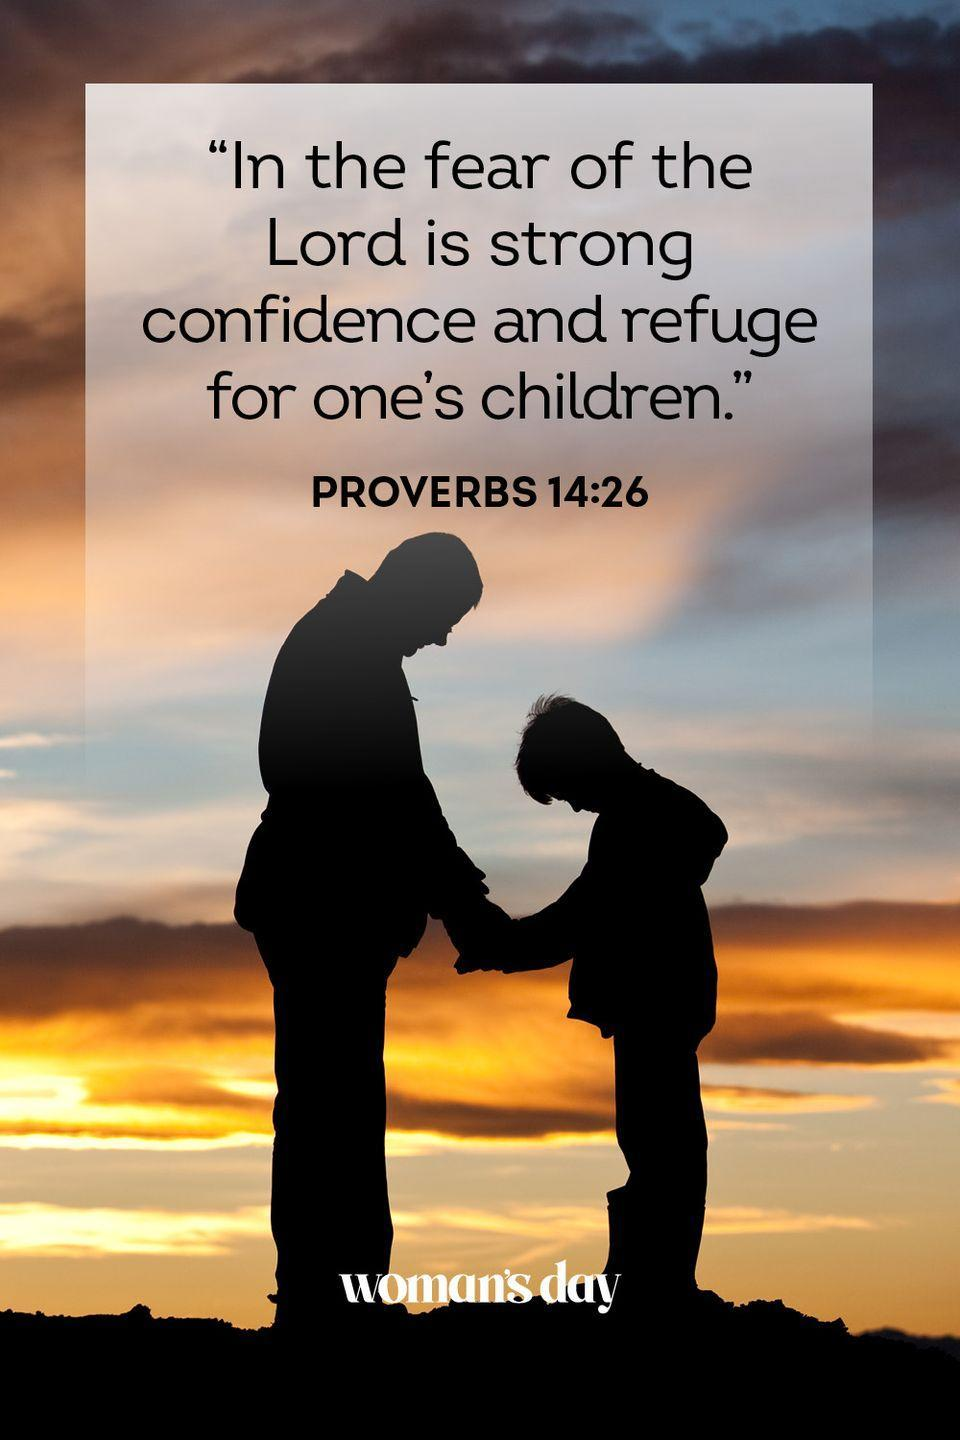 """<p>""""In the fear of the Lord is strong confidence and refuge for one's children.""""</p><p><strong>The Good News: </strong>A Godly man who praises the Lord and teaches his children to do the same will build a strong foundation of faith for his family.</p>"""